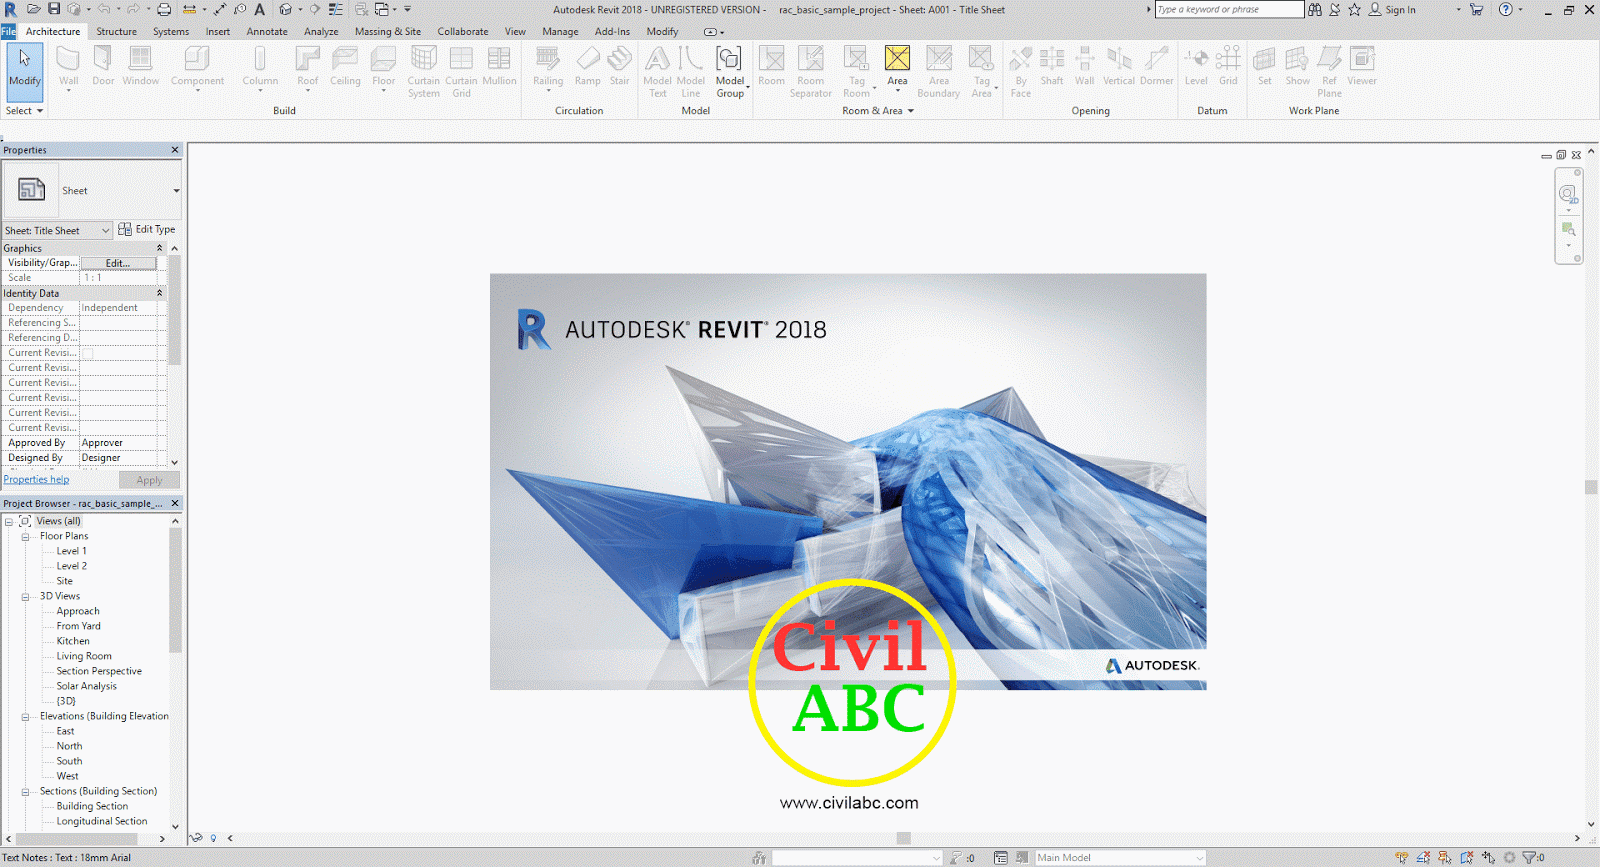 revit mep 2018 full crack 64bit